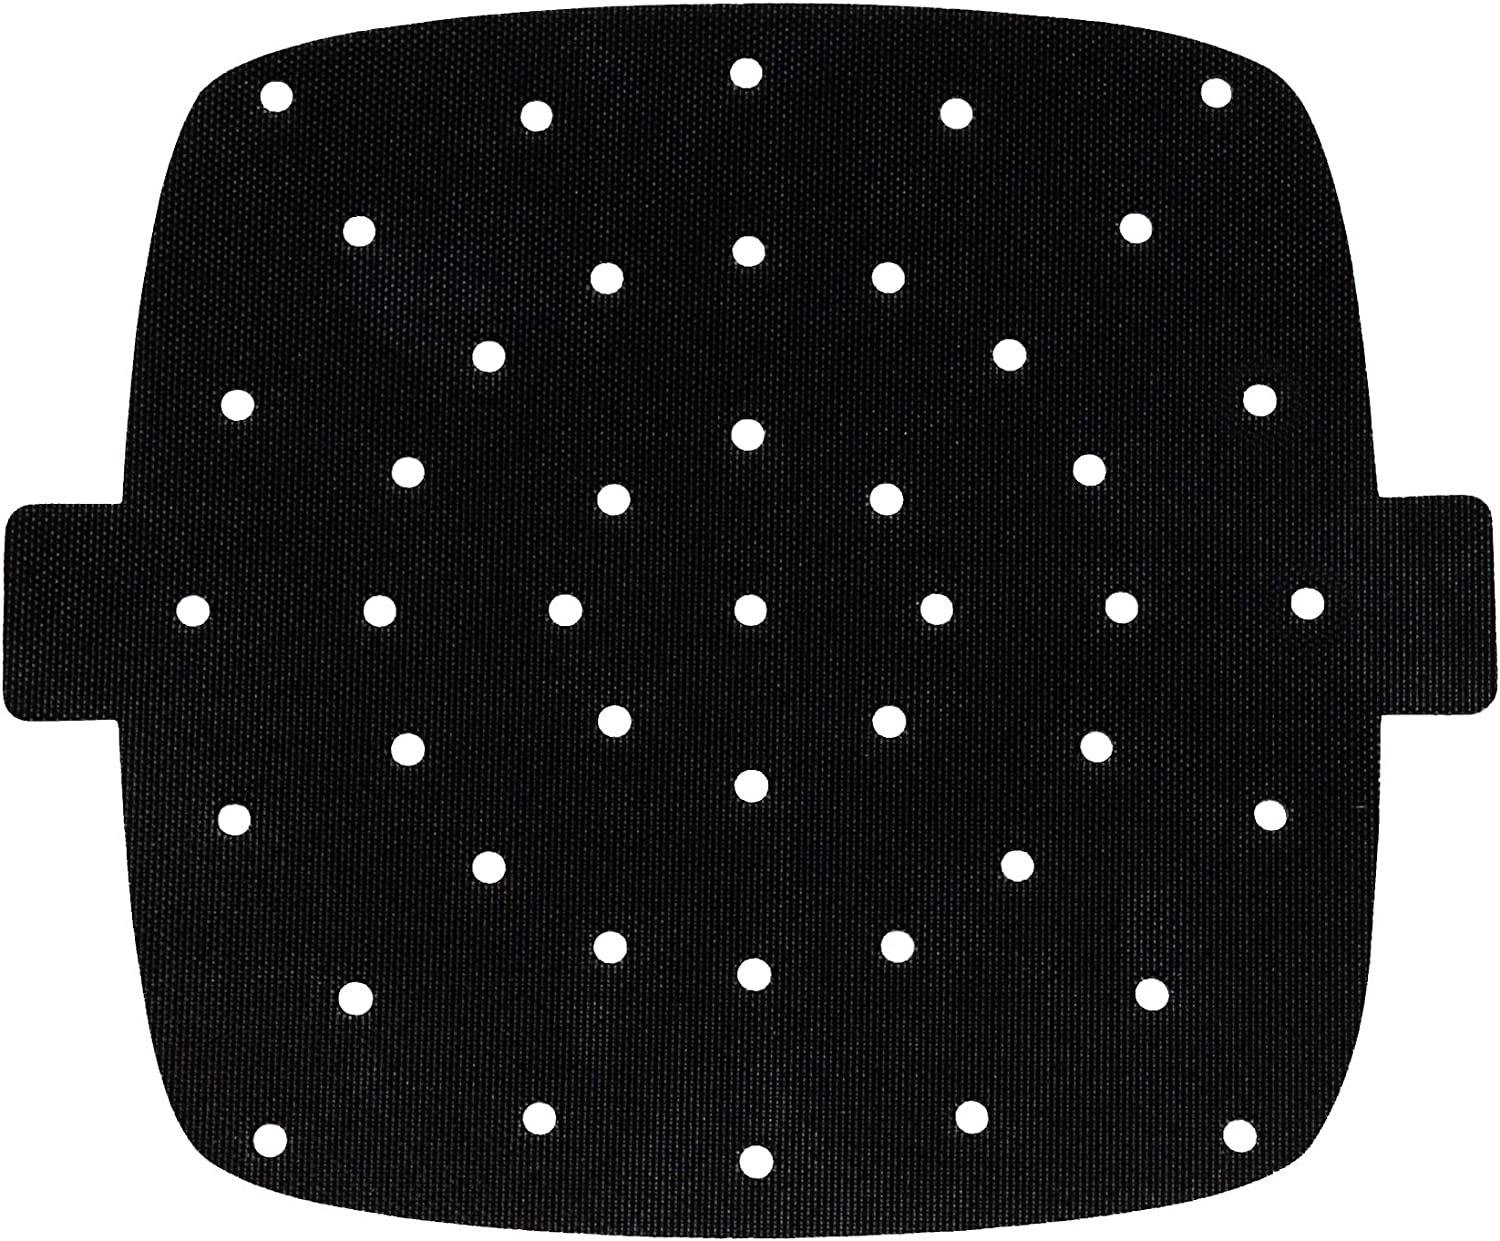 MATI Reusable Air Fryer Grill Mat Liners, Non Stick Accessory, Air Holes, Easy to Remove Tags, Easy to Clean, Extra Thick, Durable, Premium Food Grade Quality (9